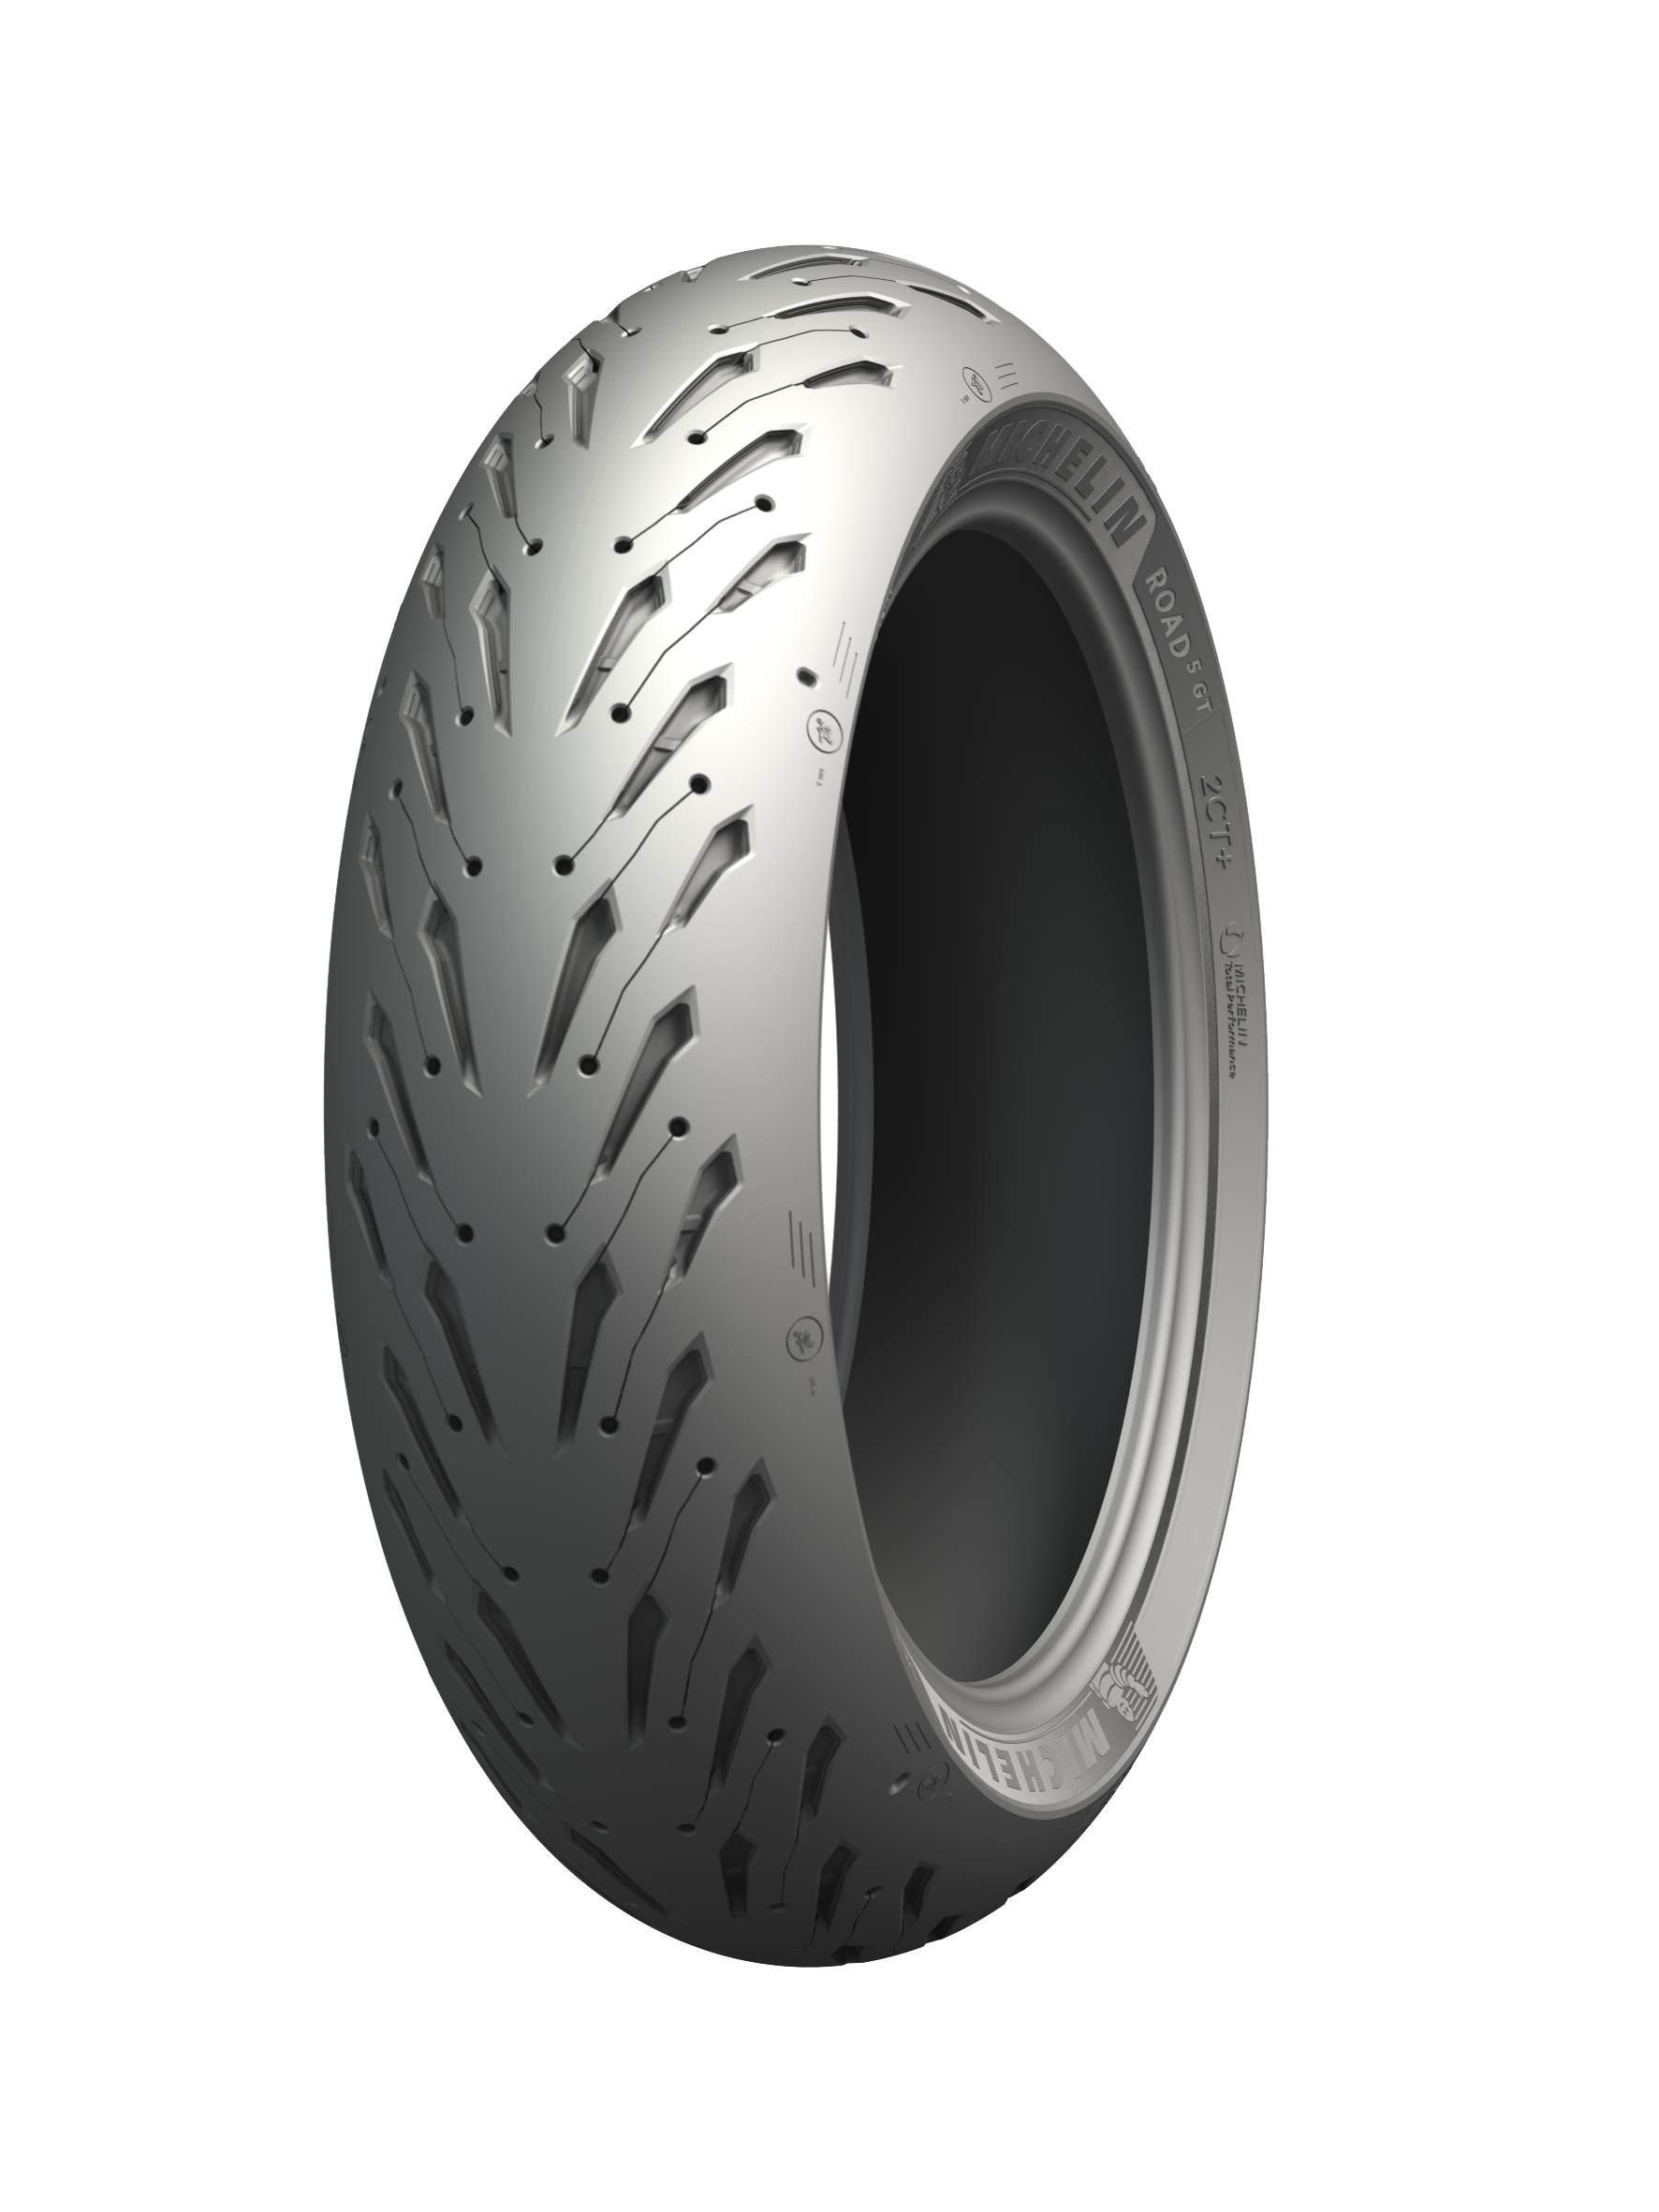 MICHELIN_Photo_Tyre_ROAD_5_GT_AR_180_55_ZR17_0003.png